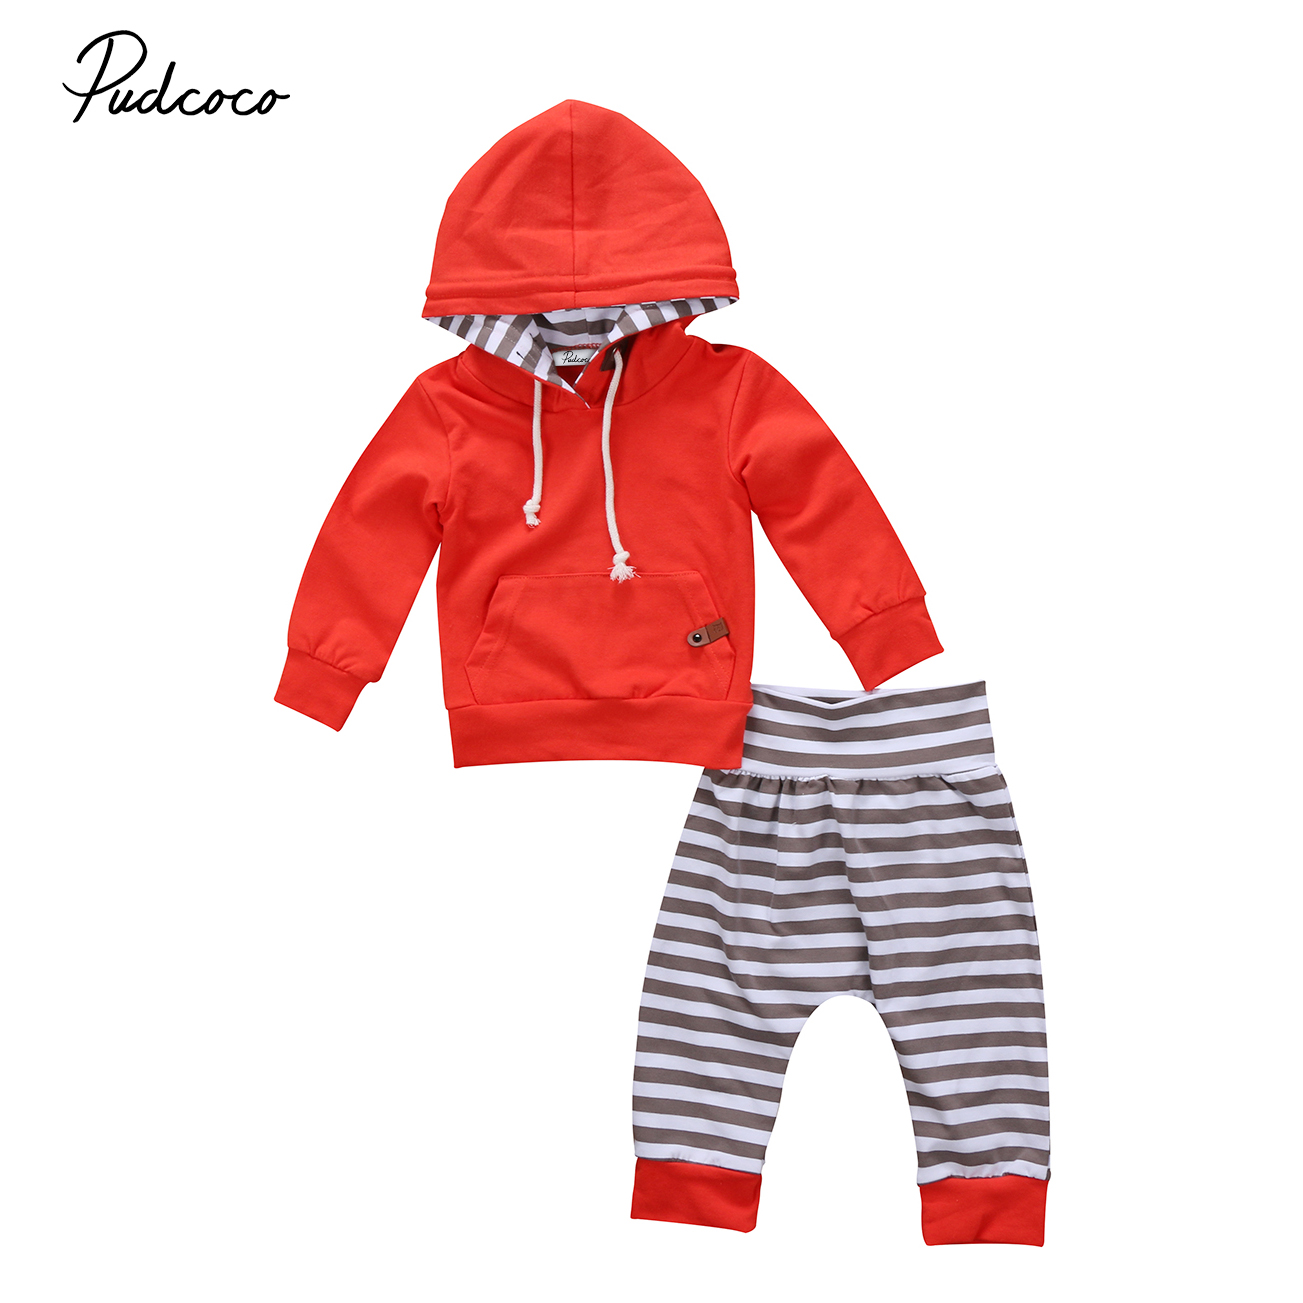 2pcs Infant Kid Baby Boy Girl Hooded Sweater Tops+Long Pants Outfits Set Clothes